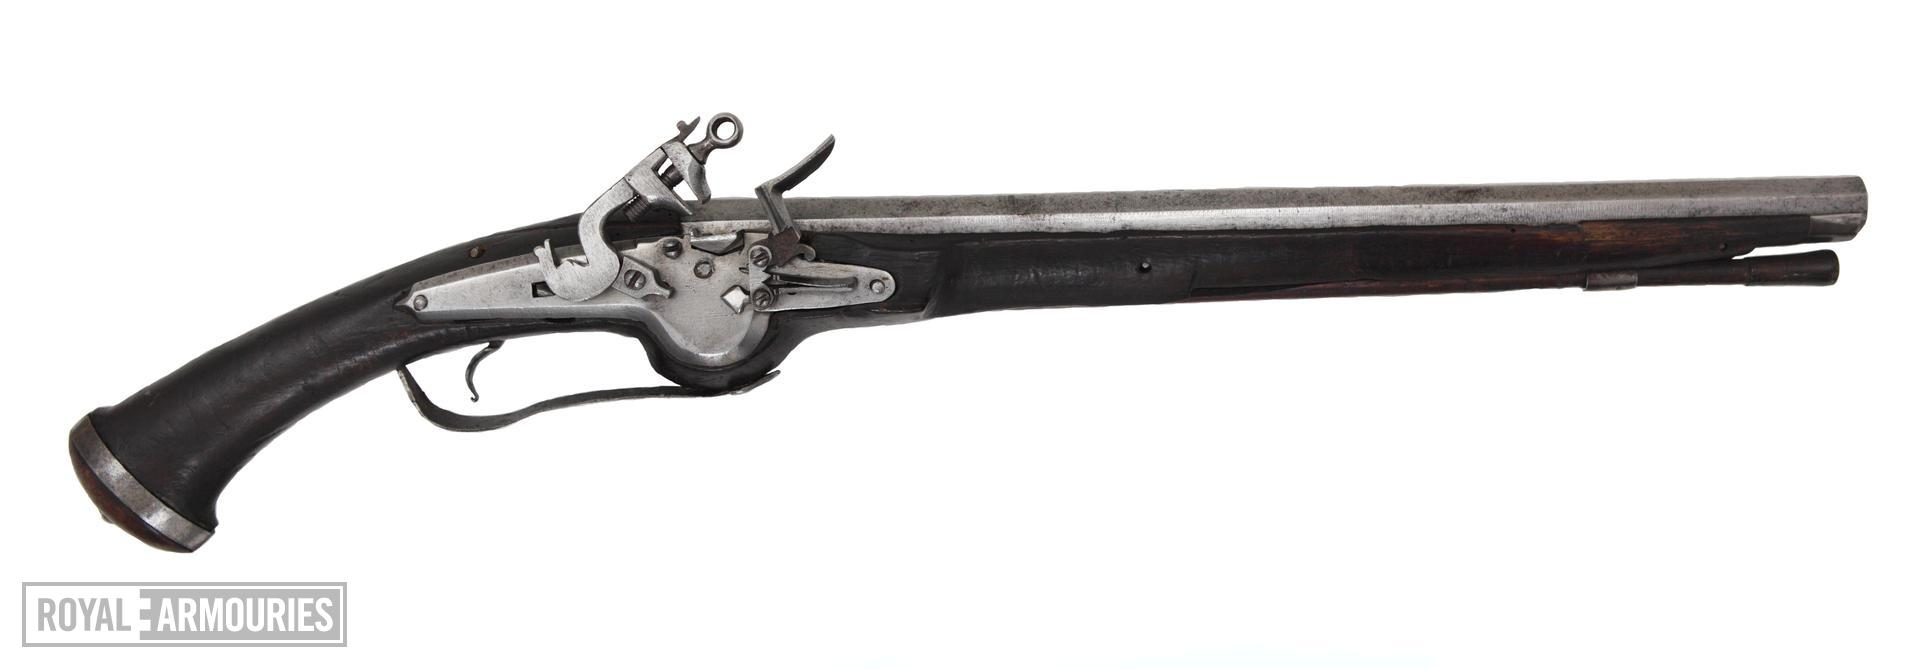 Flintlock pistol One of a pair, see XII.5459. Littlecote collection